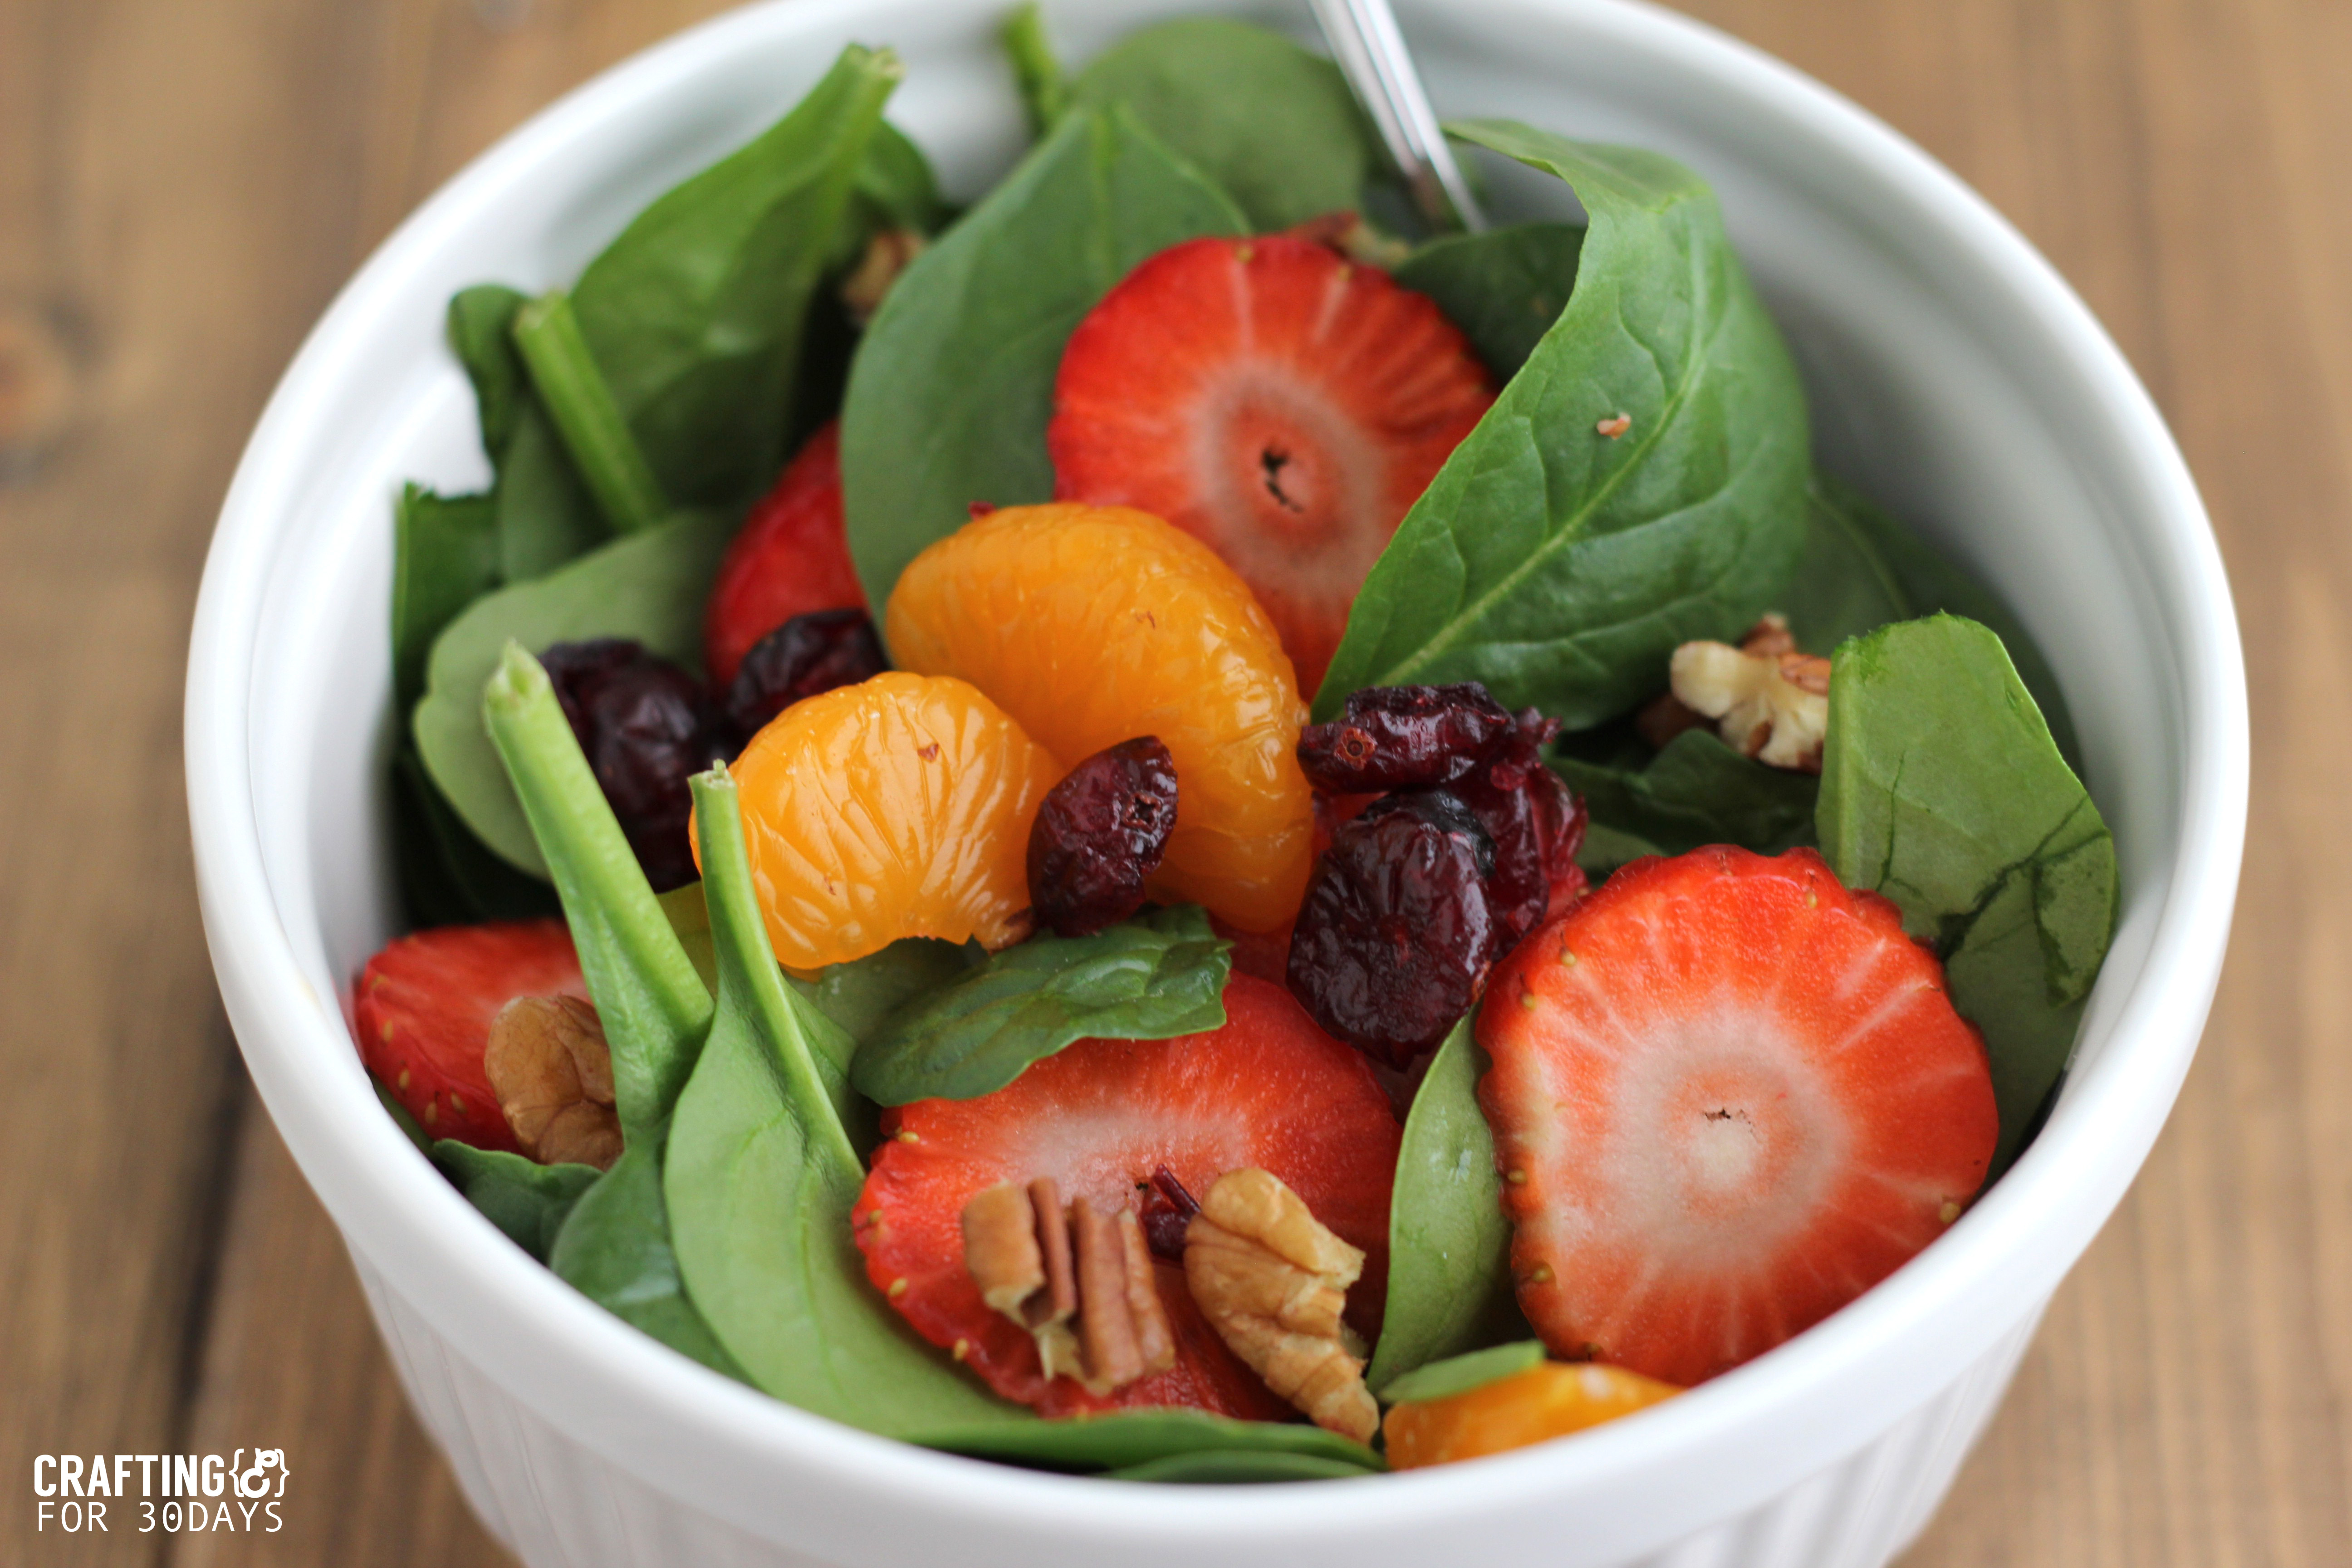 Spinach Strawberry Salad- an awesomely delicious and healthy option for the new year! From CraftingE via www.thirtyhandmadedays.com